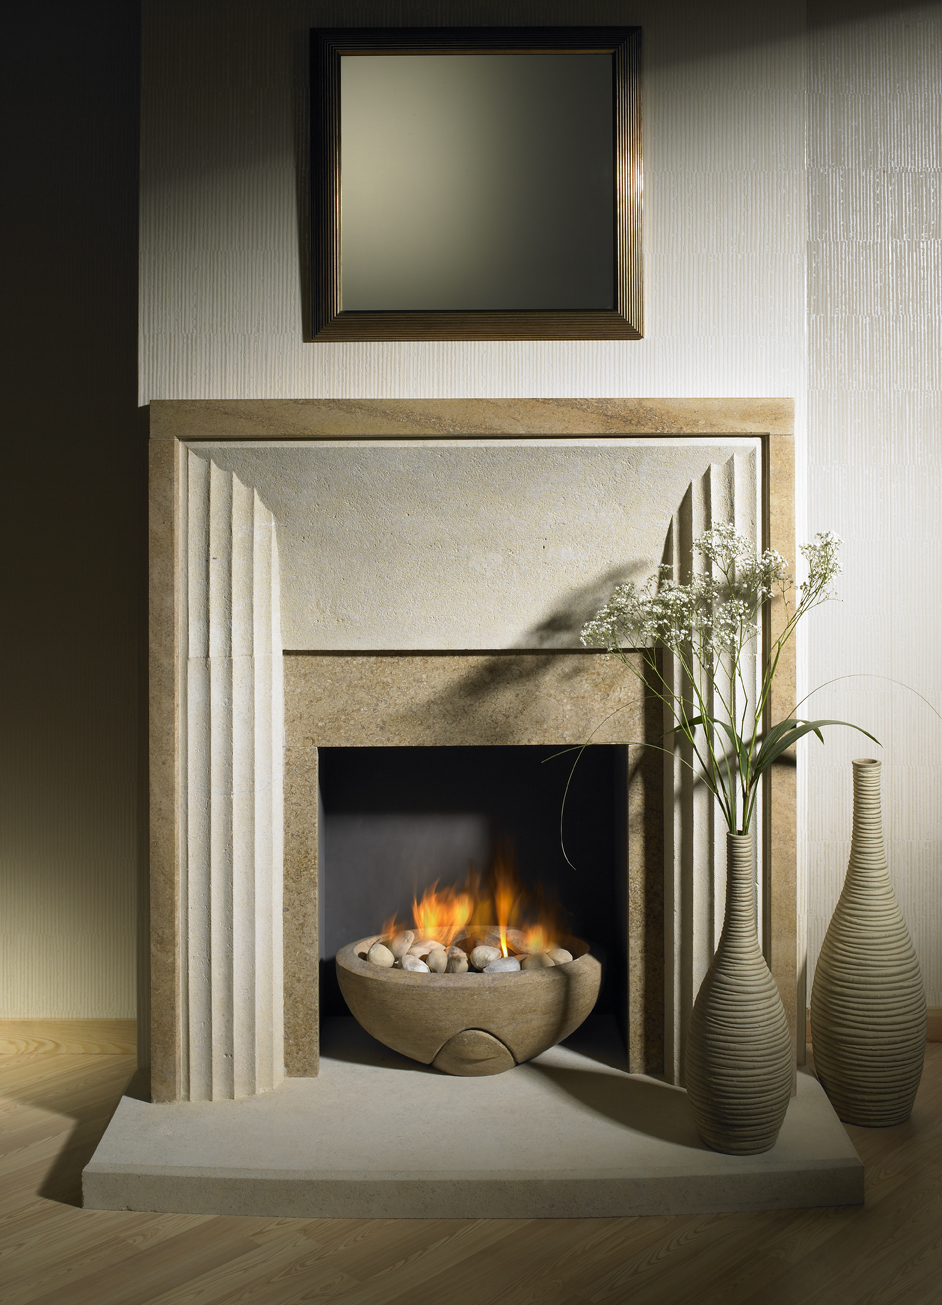 7. Manhattan style fireplace in Bathstone and Ancaster Weatherbed, with Weatherbed firebowl – Kensington